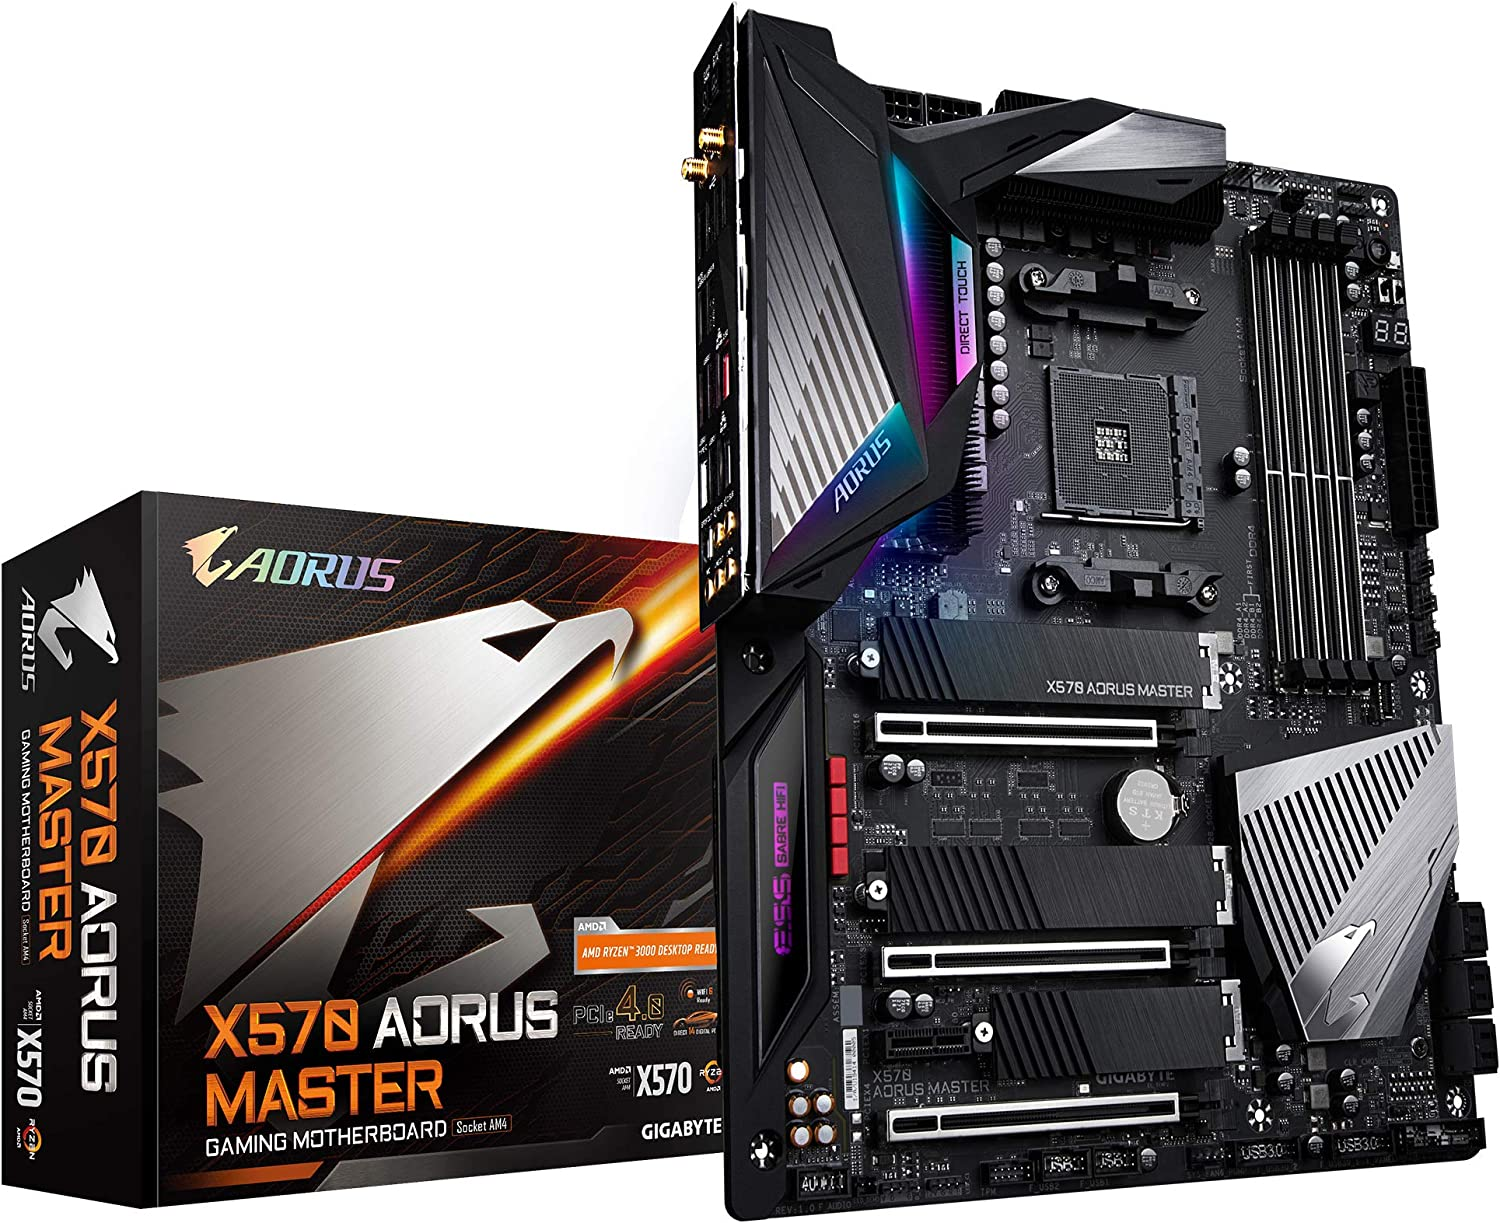 81f8nbIA kL. AC SL1500 Top 9 Best Motherboard For Ryzen 9 3900x